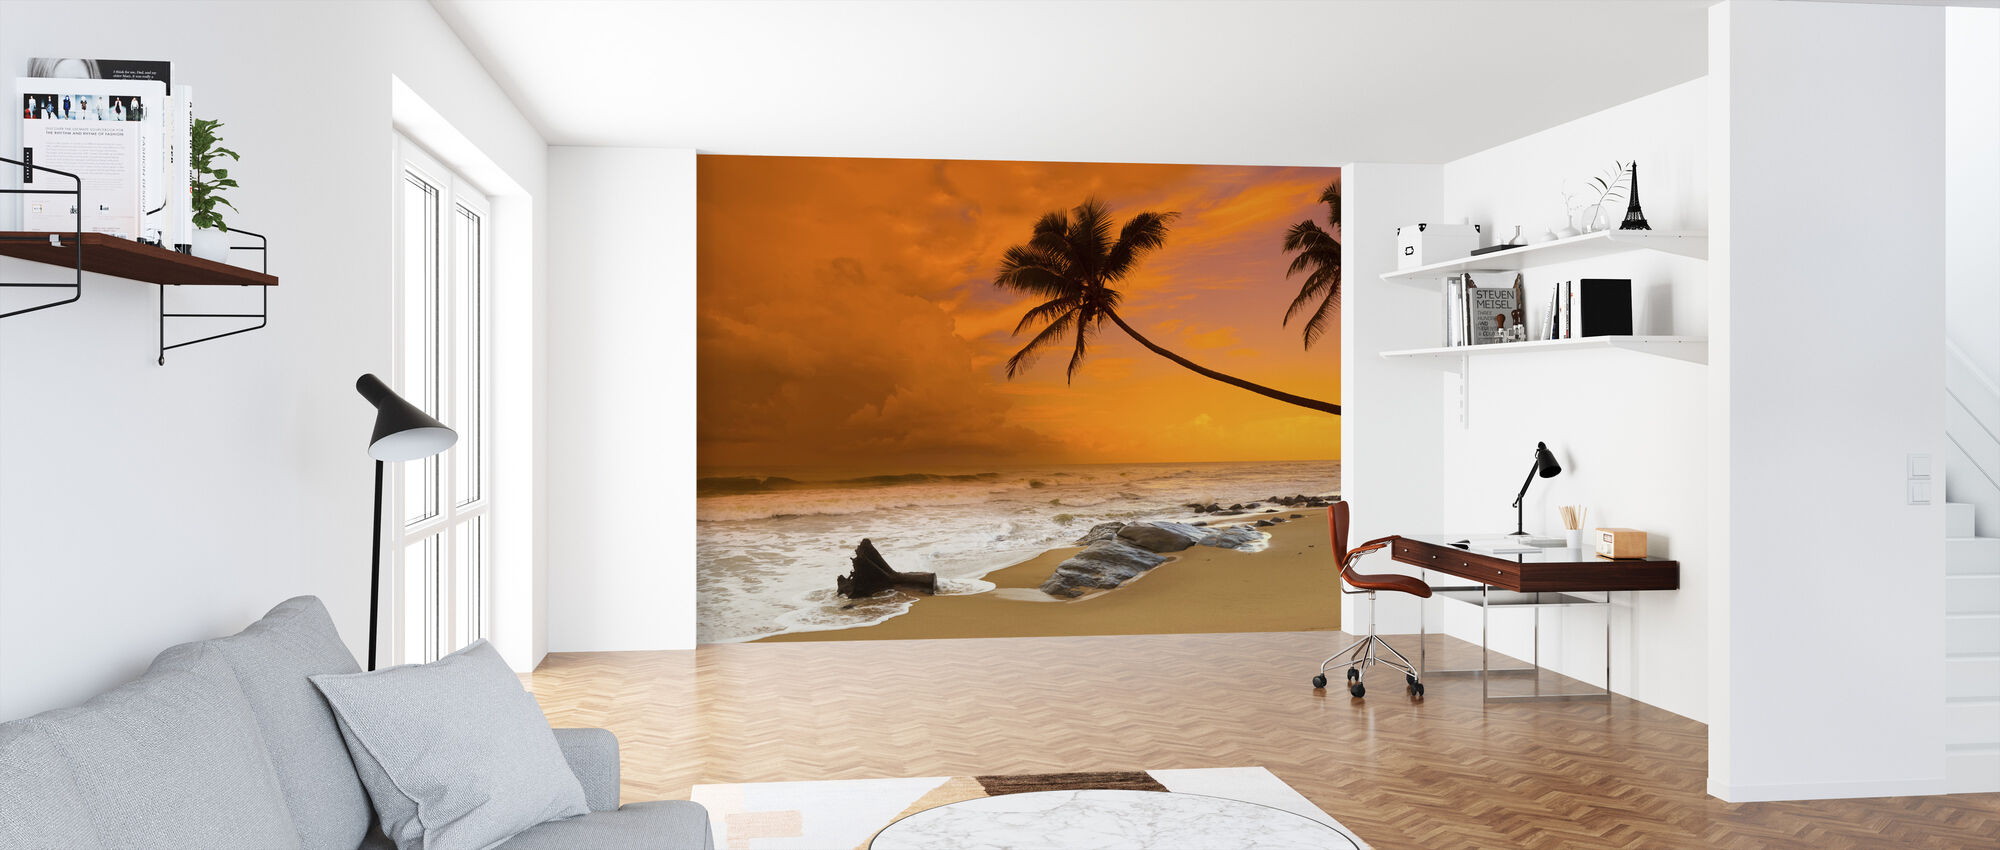 Sunset over the Sea - Wallpaper - Office